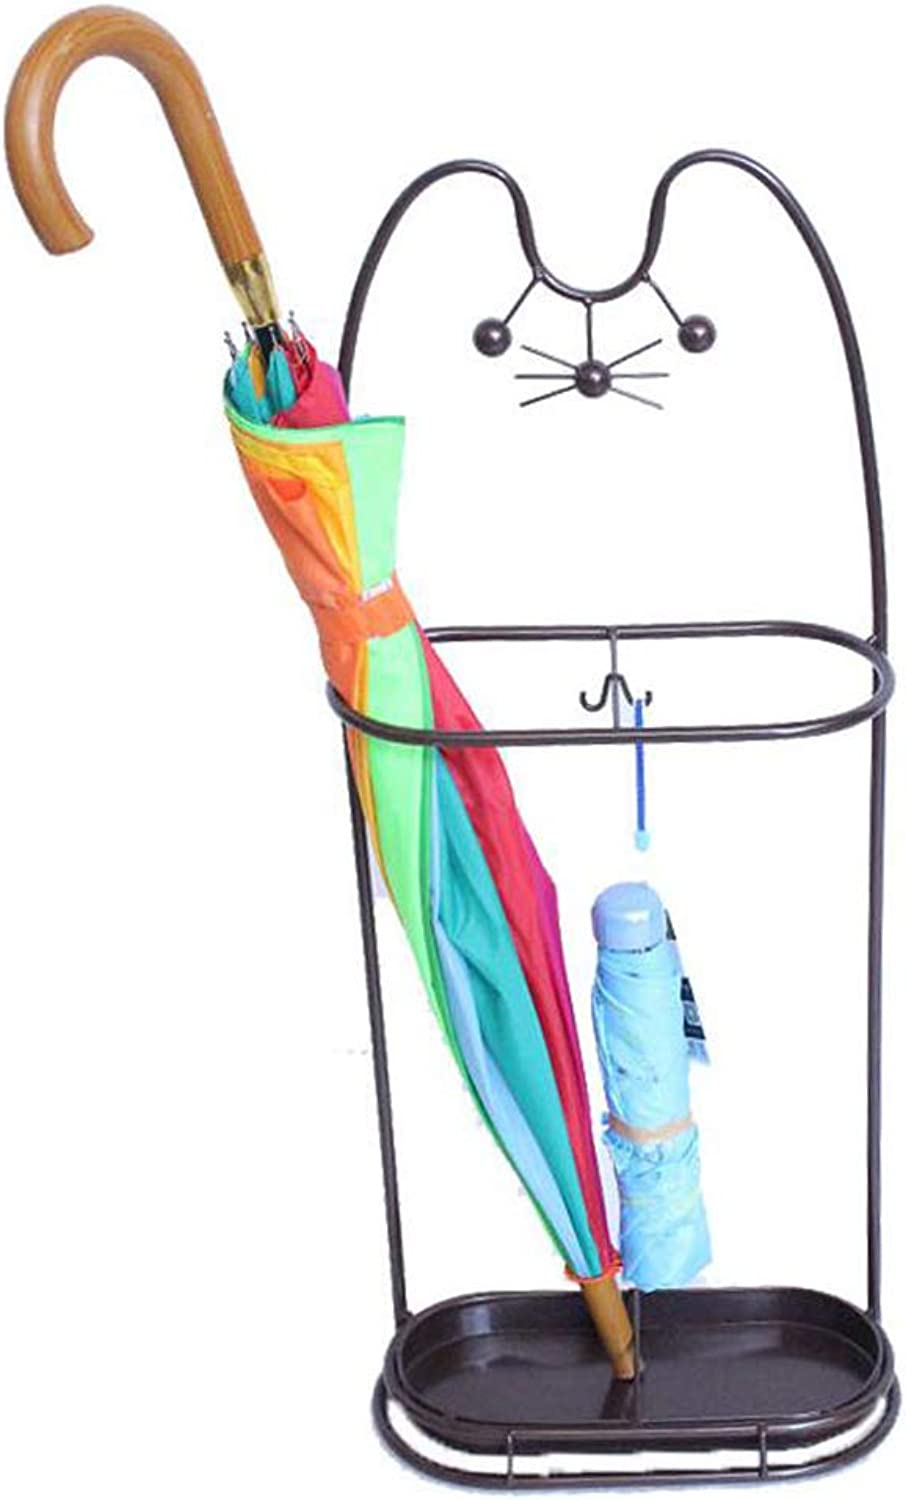 HTTDIAN Lucky cat Wrought Iron Household Umbrella Stand Storage Rack Umbrella Bucket Hotel Lobby Cute Umbrella Stand (color   Black)